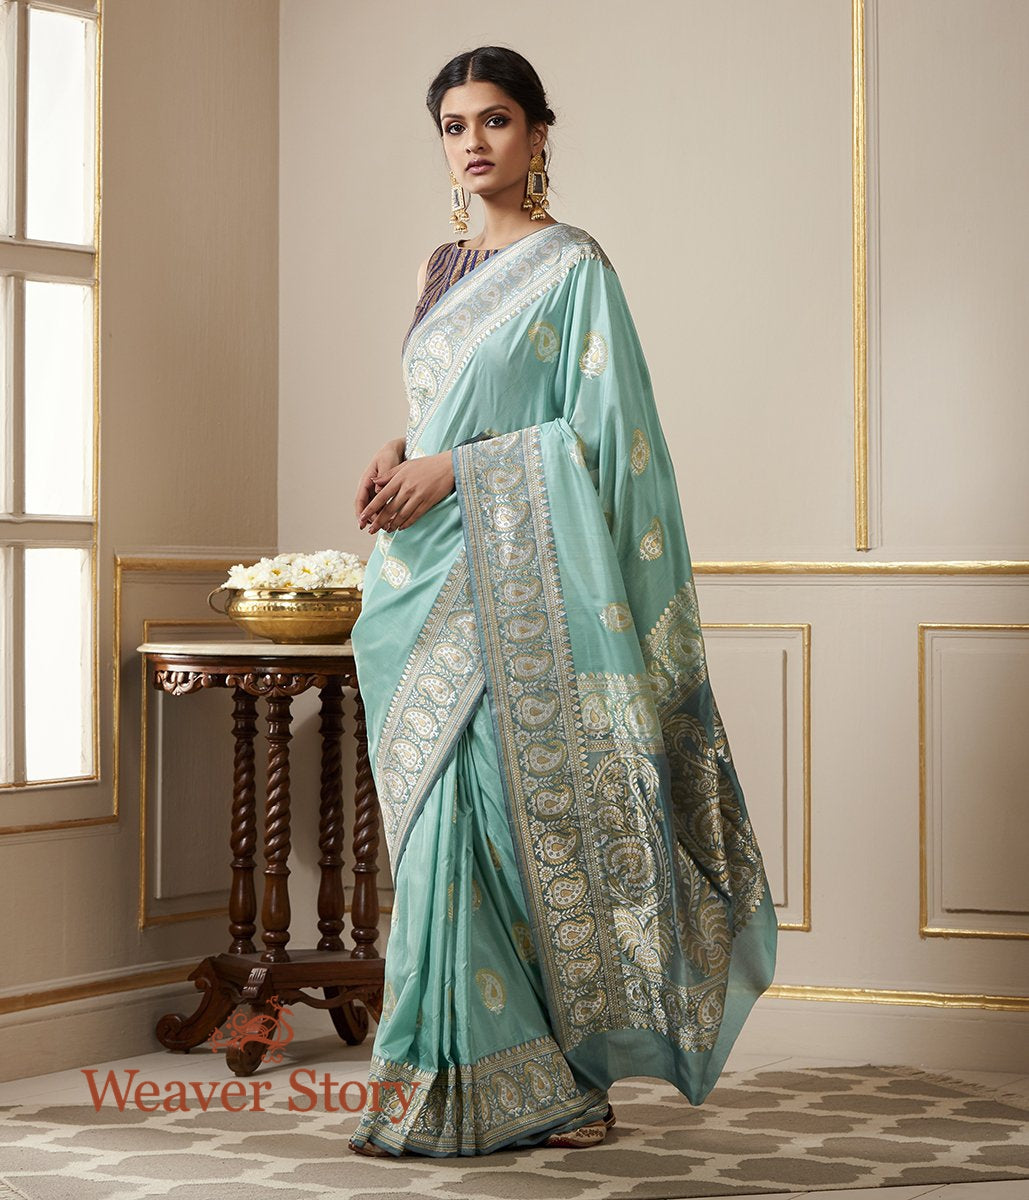 Handwoven Sea Green Silk Kadhwa with Gold Silver Paisley